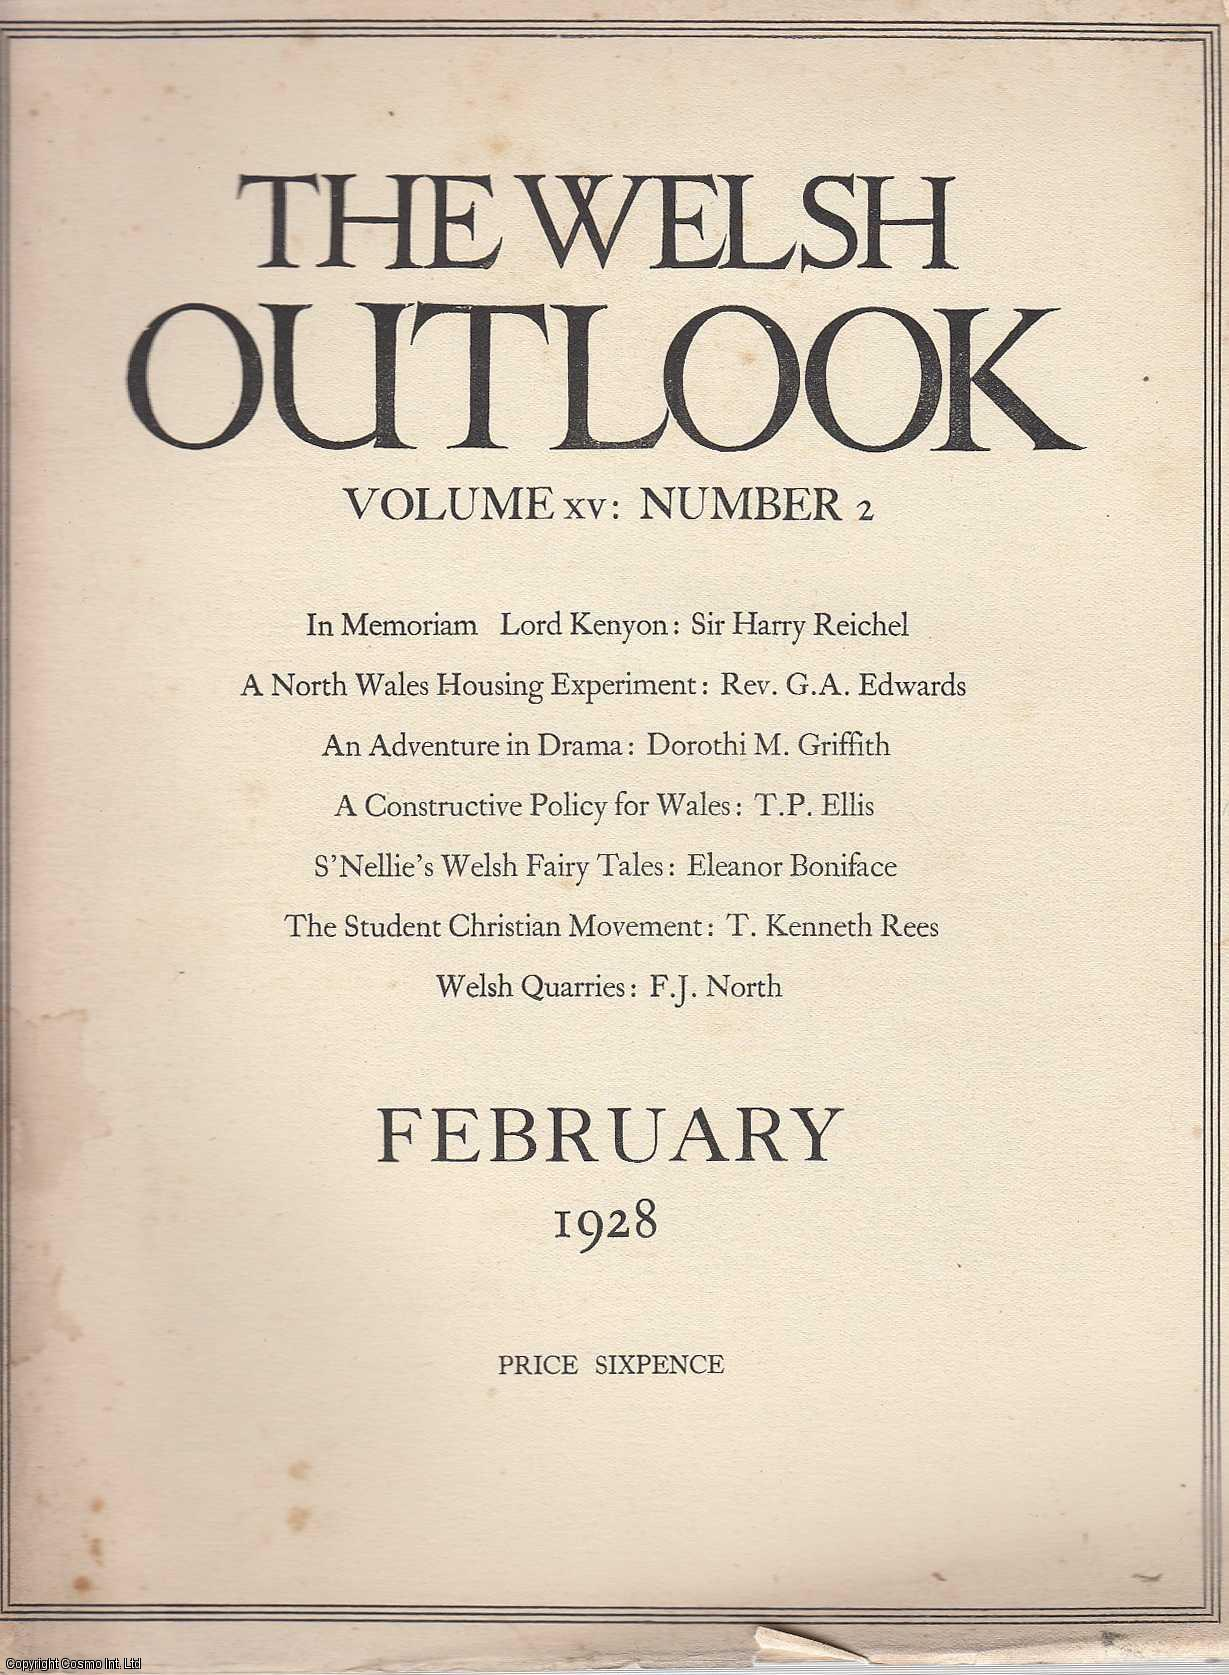 The Welsh Outlook. A Monthly Journal of National Social Progress. February, 1928. Contains; In Memoriam: Lord Kenyon by Sir Harry R. Reichel; A North Wales Housing Experiment by Rev. G.A. Edwards; An Adventure in Drama by Dorothi M. Griffith; A Constructive Policy for Wales by T.P. Ellis; Wales and The World by Rev. Gwilym Davies; The Memories of The Archbishop of Wales: A Review by T.P.E.; S'Nellie's Welsh Fairy Tales by Eleanor Boniface; The Student Christian Movement by T. Kenneth Rees; Welsh Quarries and their Products by F.J. North; Wales at  WOrk - A Social Diary., Thomas Jones (Editor)